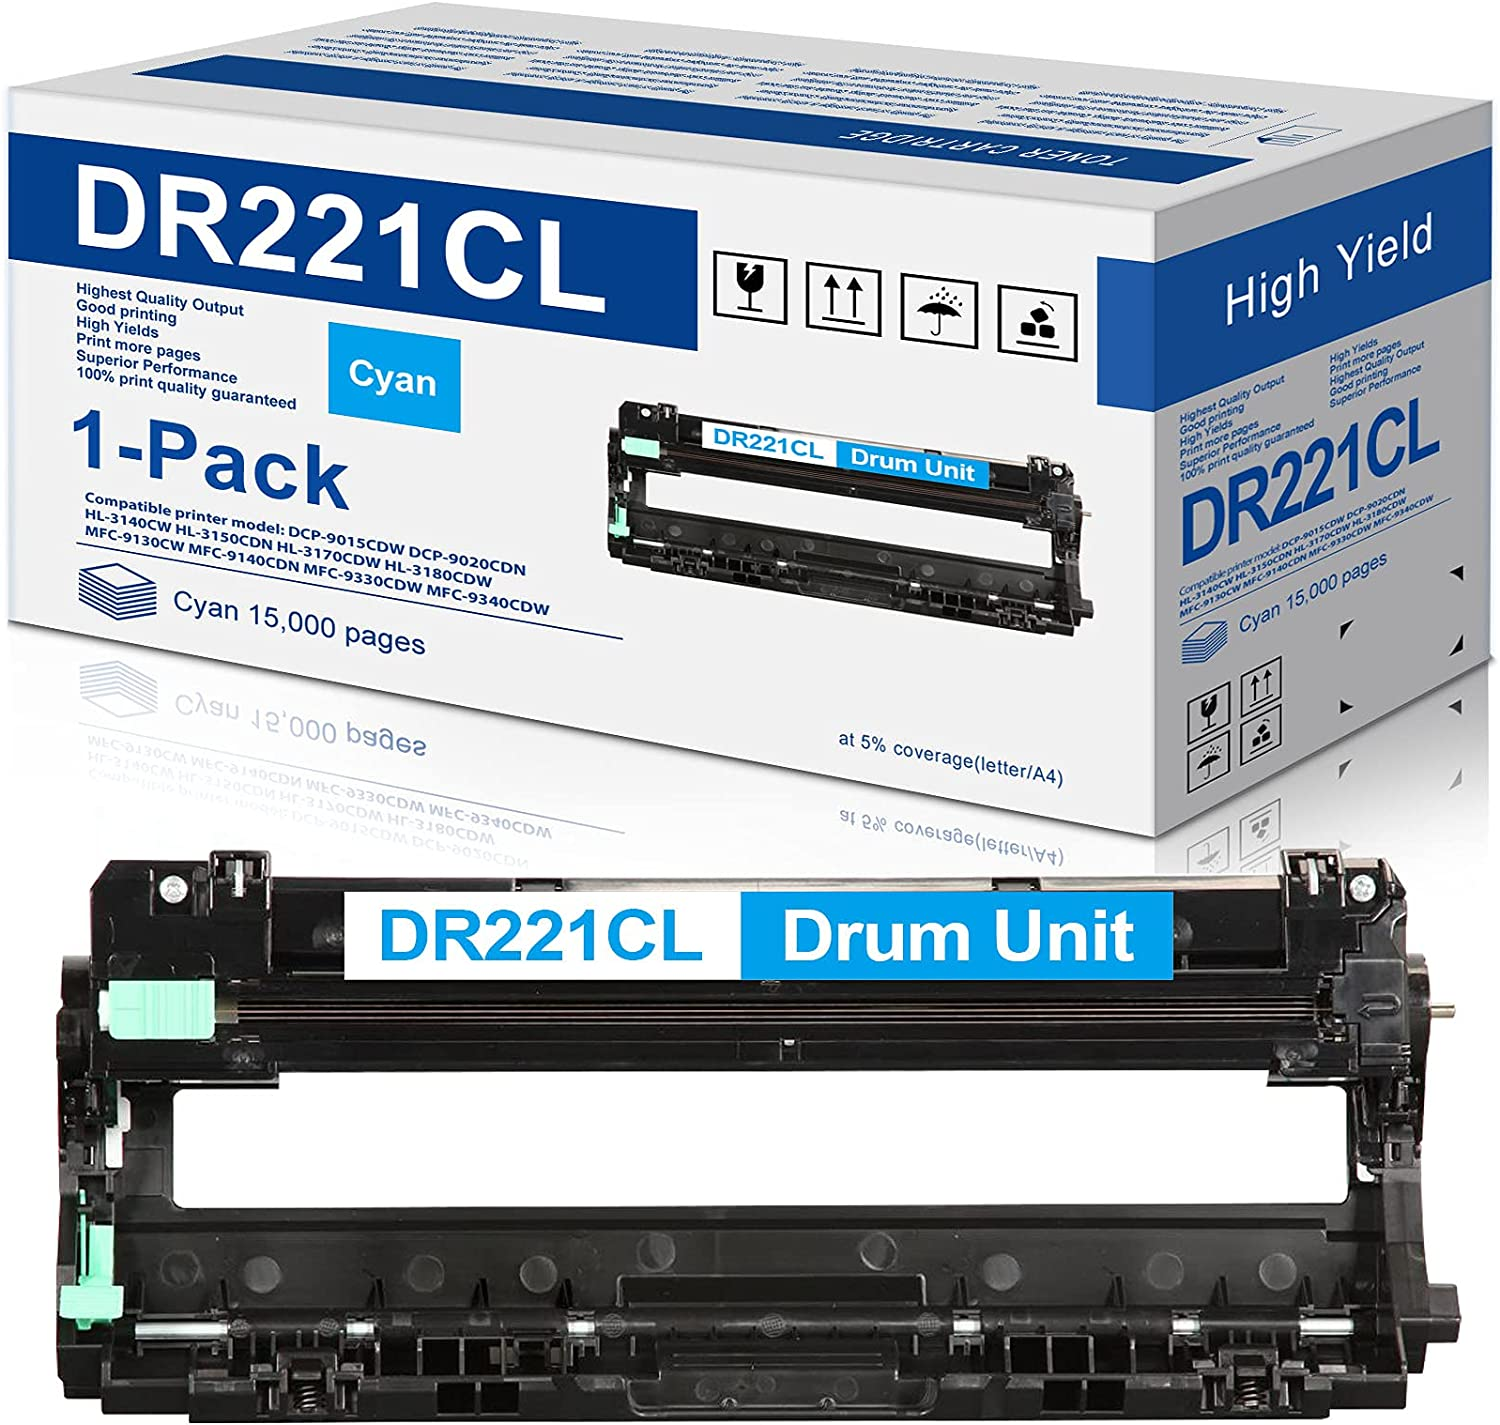 Compatible 1-Cyan DR221CL DR 221CL Drum Unit Replacement for Brother DR-221CL DR221 HL-3140CW HL-3170CDW HL-3180CDW MFC-9130CW MFC-9330CDW MFC-9340CDW Printer